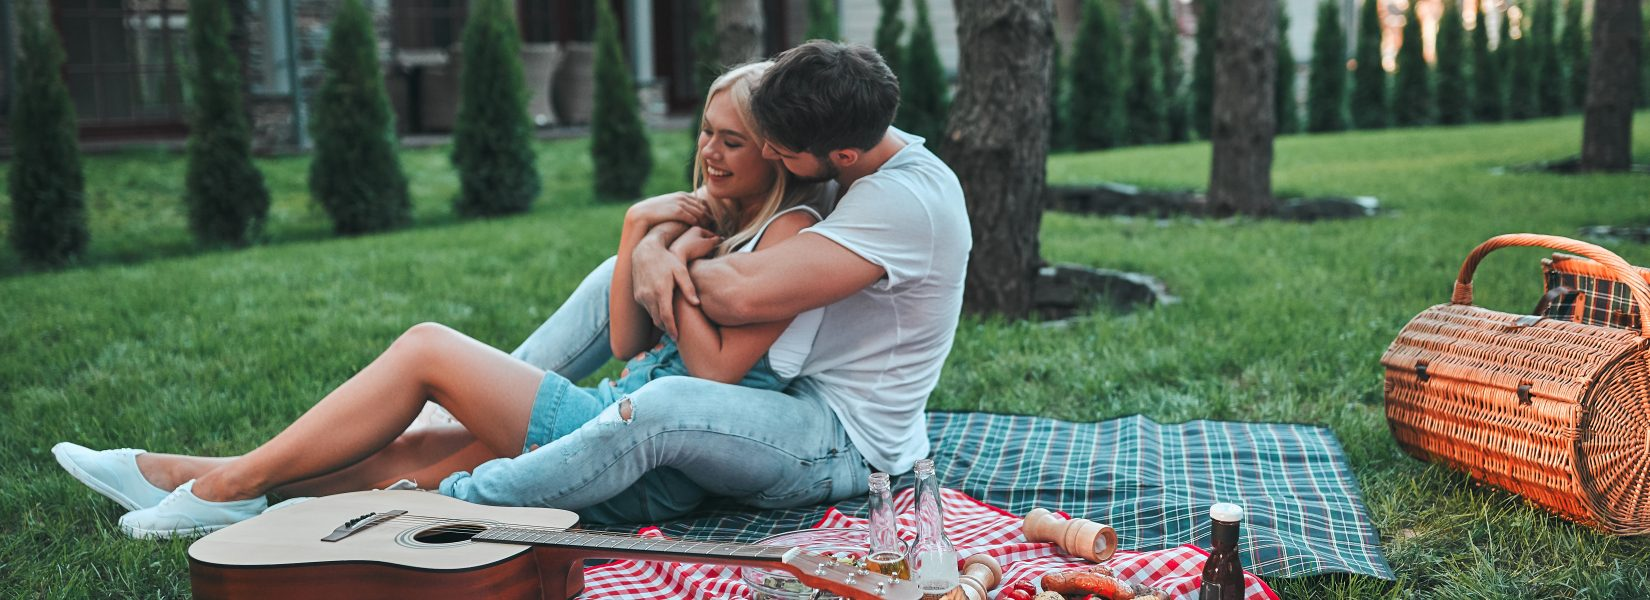 15 Outdoor Date Night Ideas For Summer